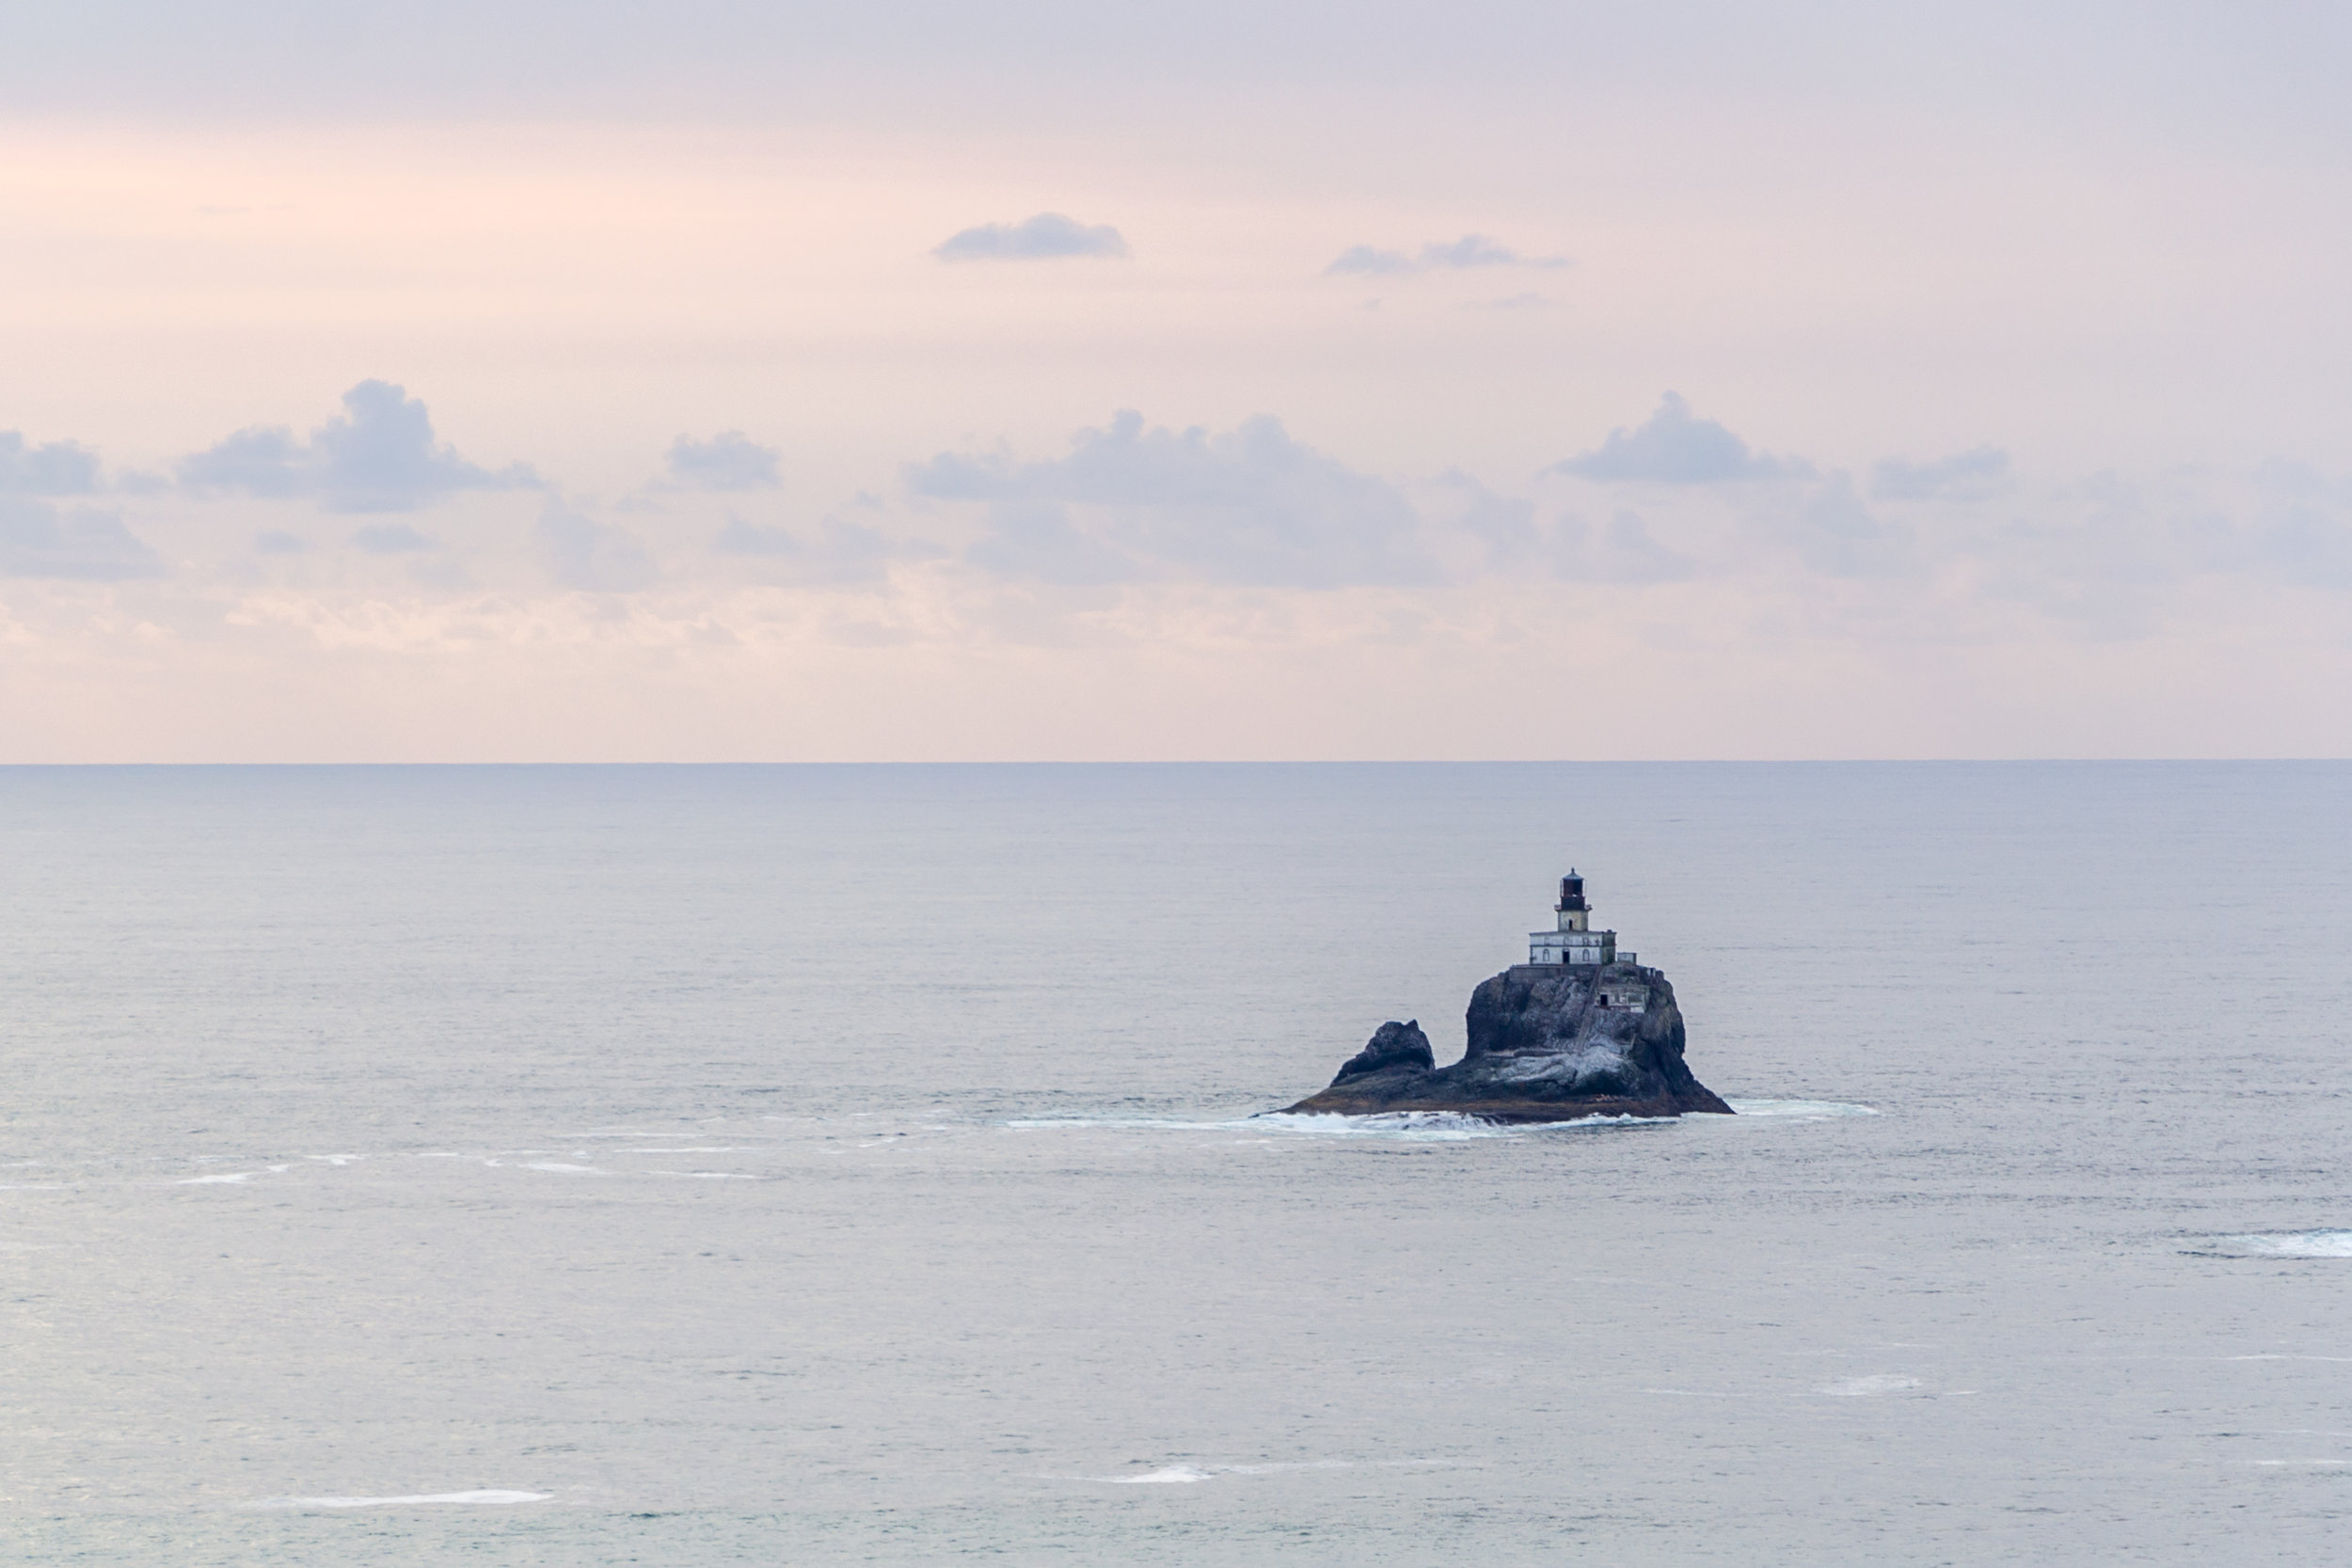 """The legendary """"Terrible Tilly"""" sits a mile off the coast of Cannon Beach, near Ecola State Park, on the Oregon Coast."""